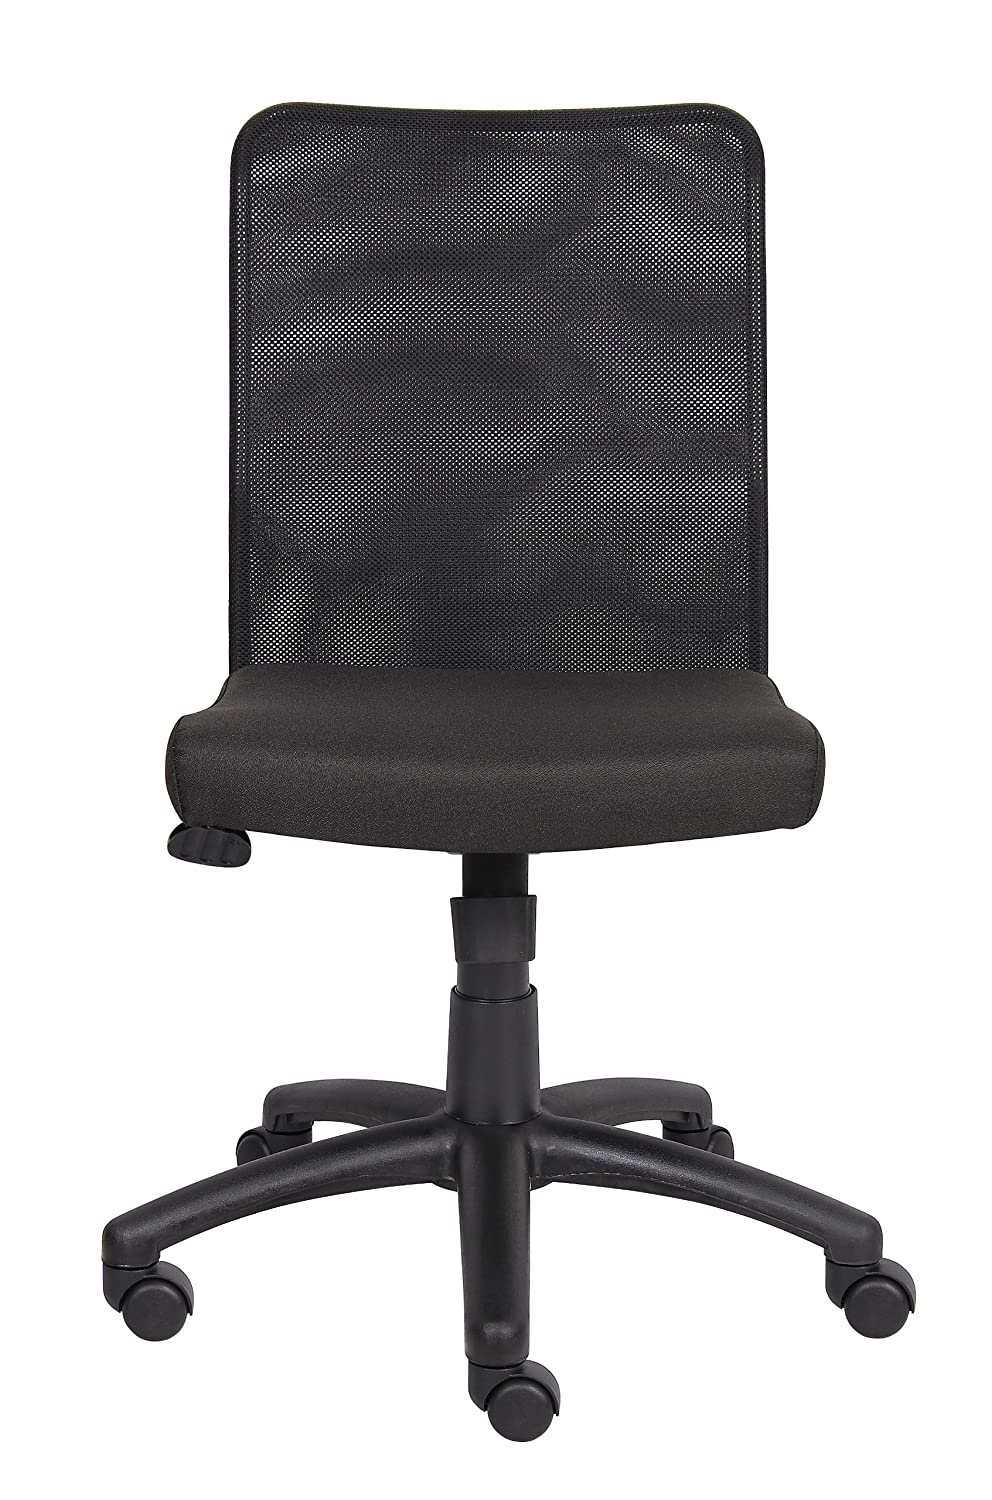 amazoncom boss office products b6105 budget mesh task chair